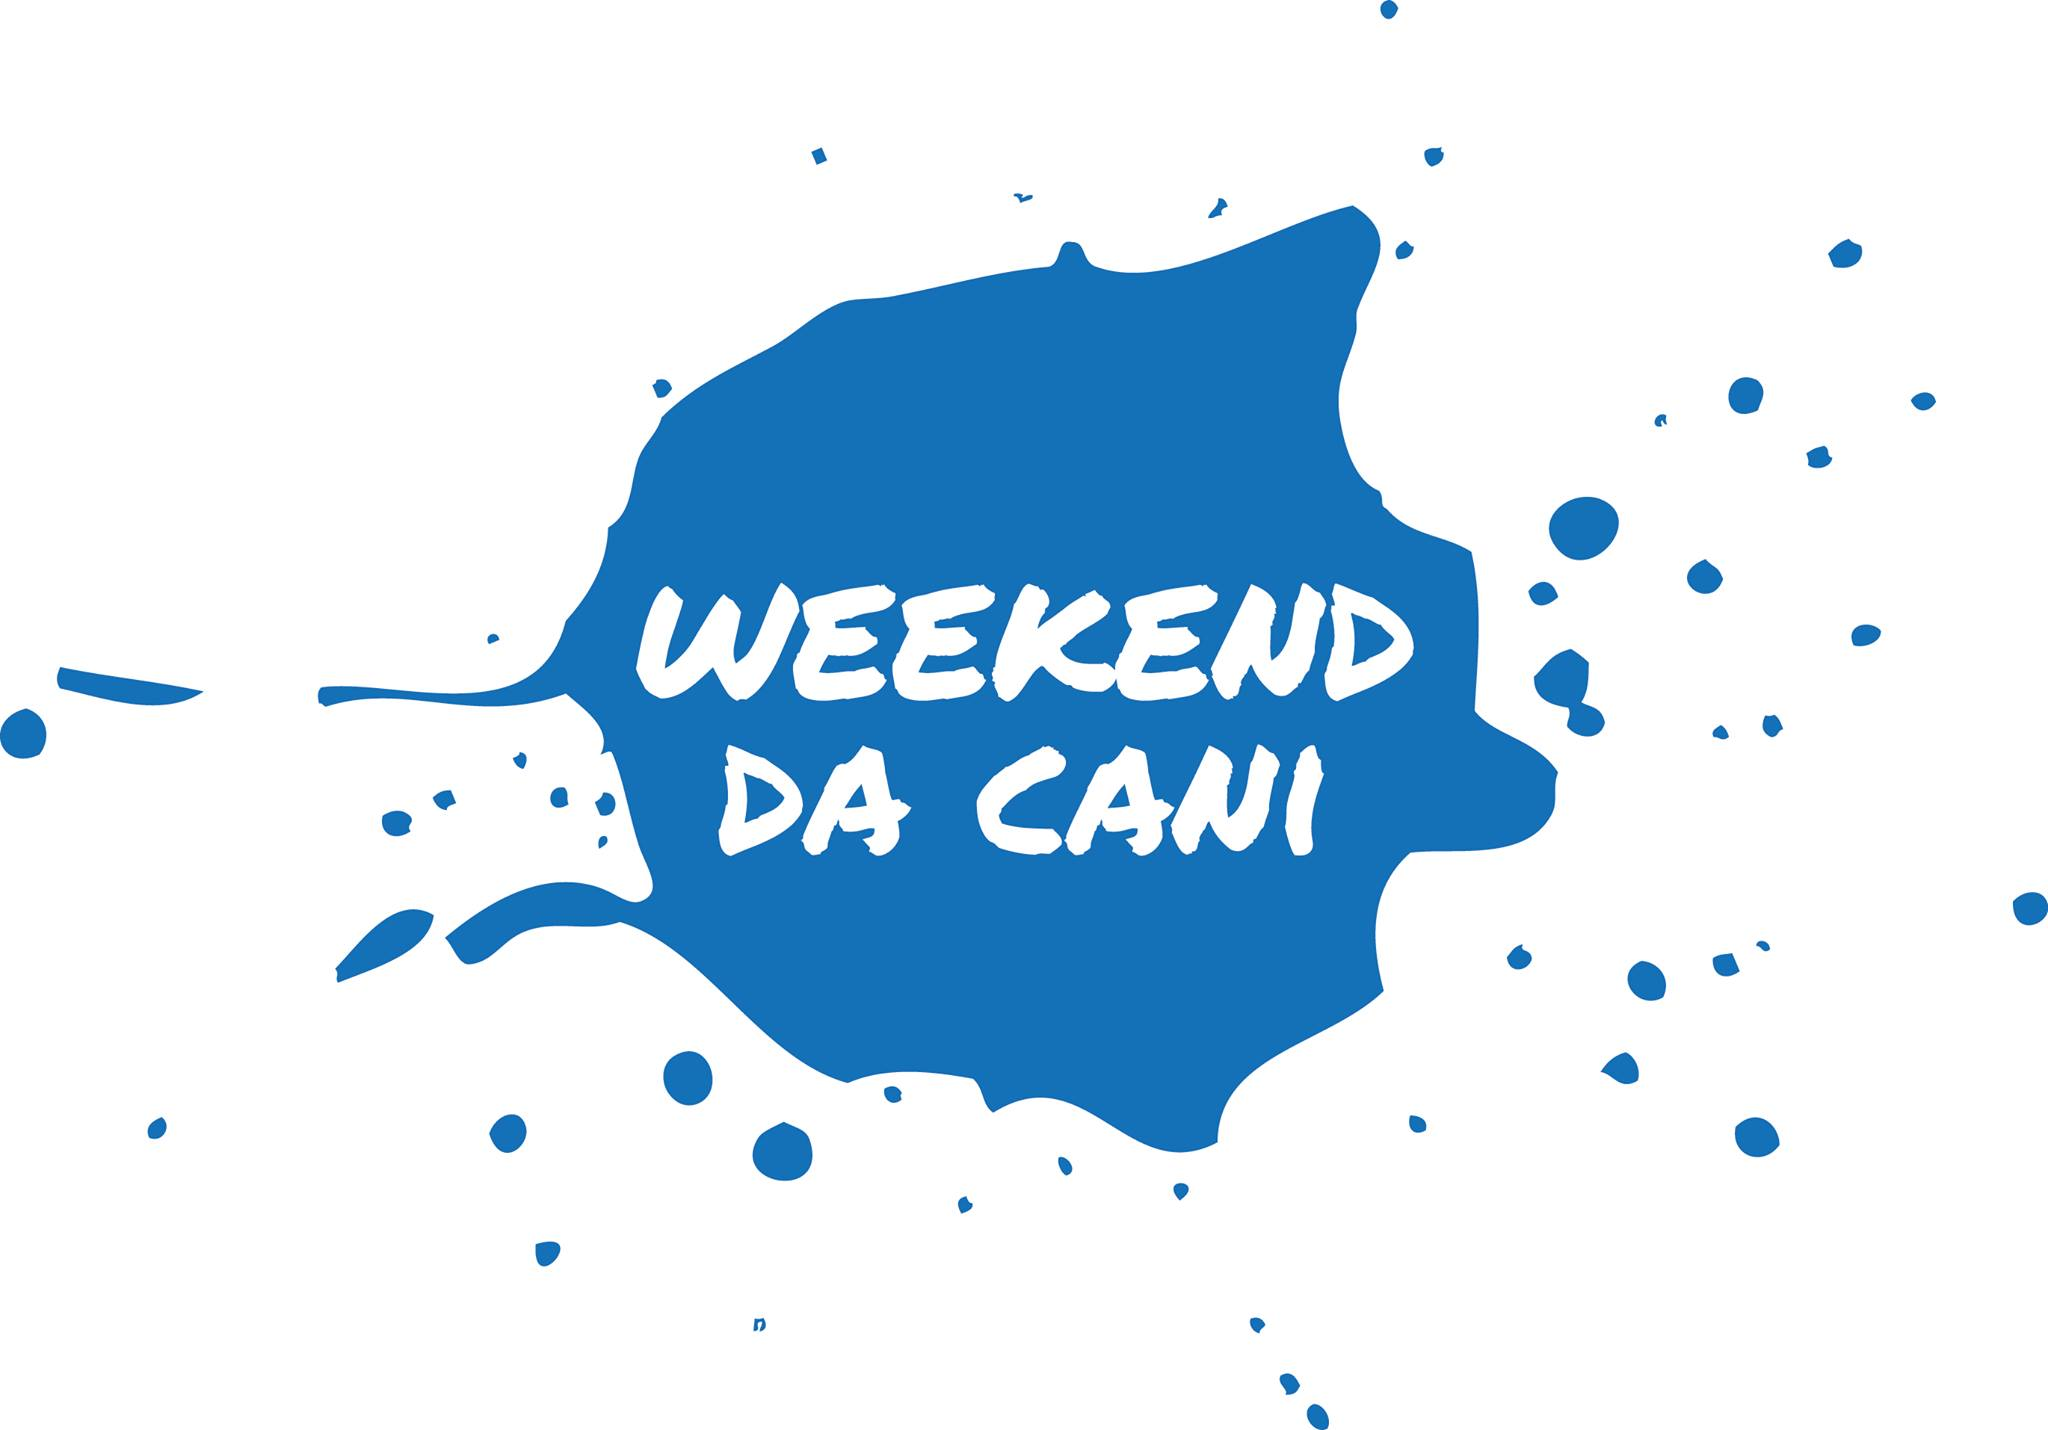 Weekend da cani